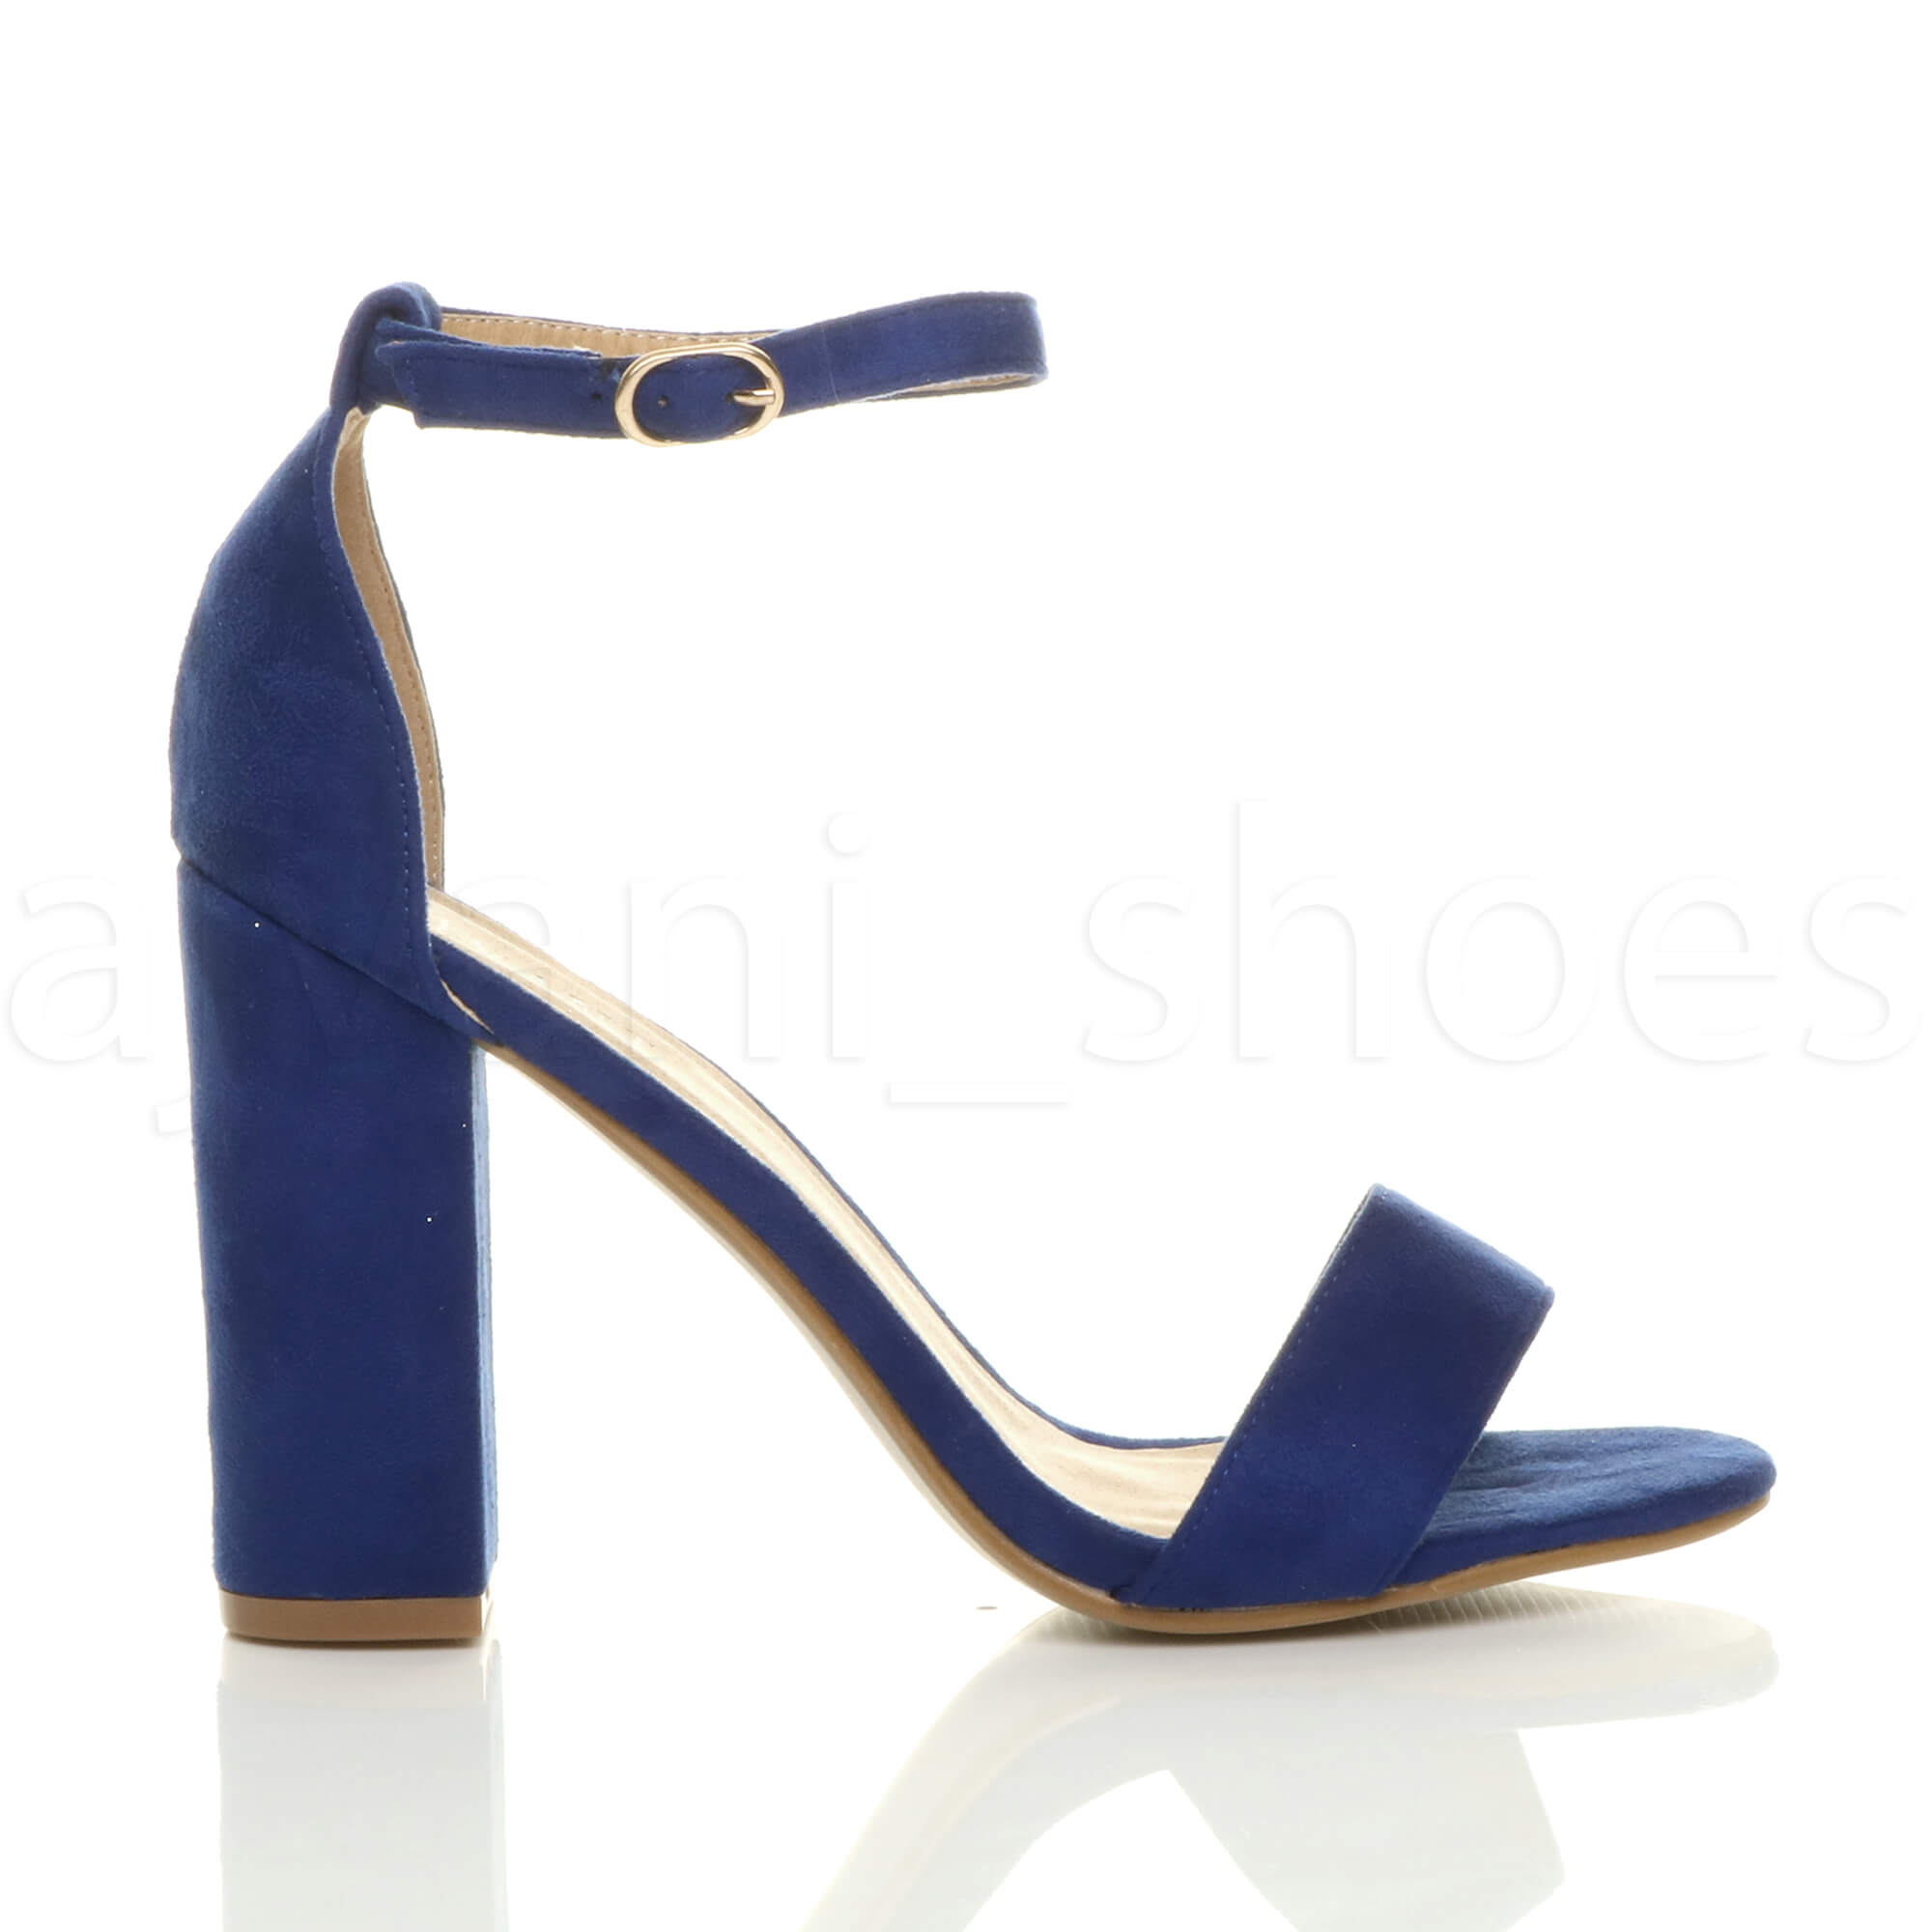 WOMENS-LADIES-BLOCK-HIGH-HEEL-ANKLE-STRAP-PEEP-TOE-STRAPPY-SANDALS-SHOES-SIZE thumbnail 53